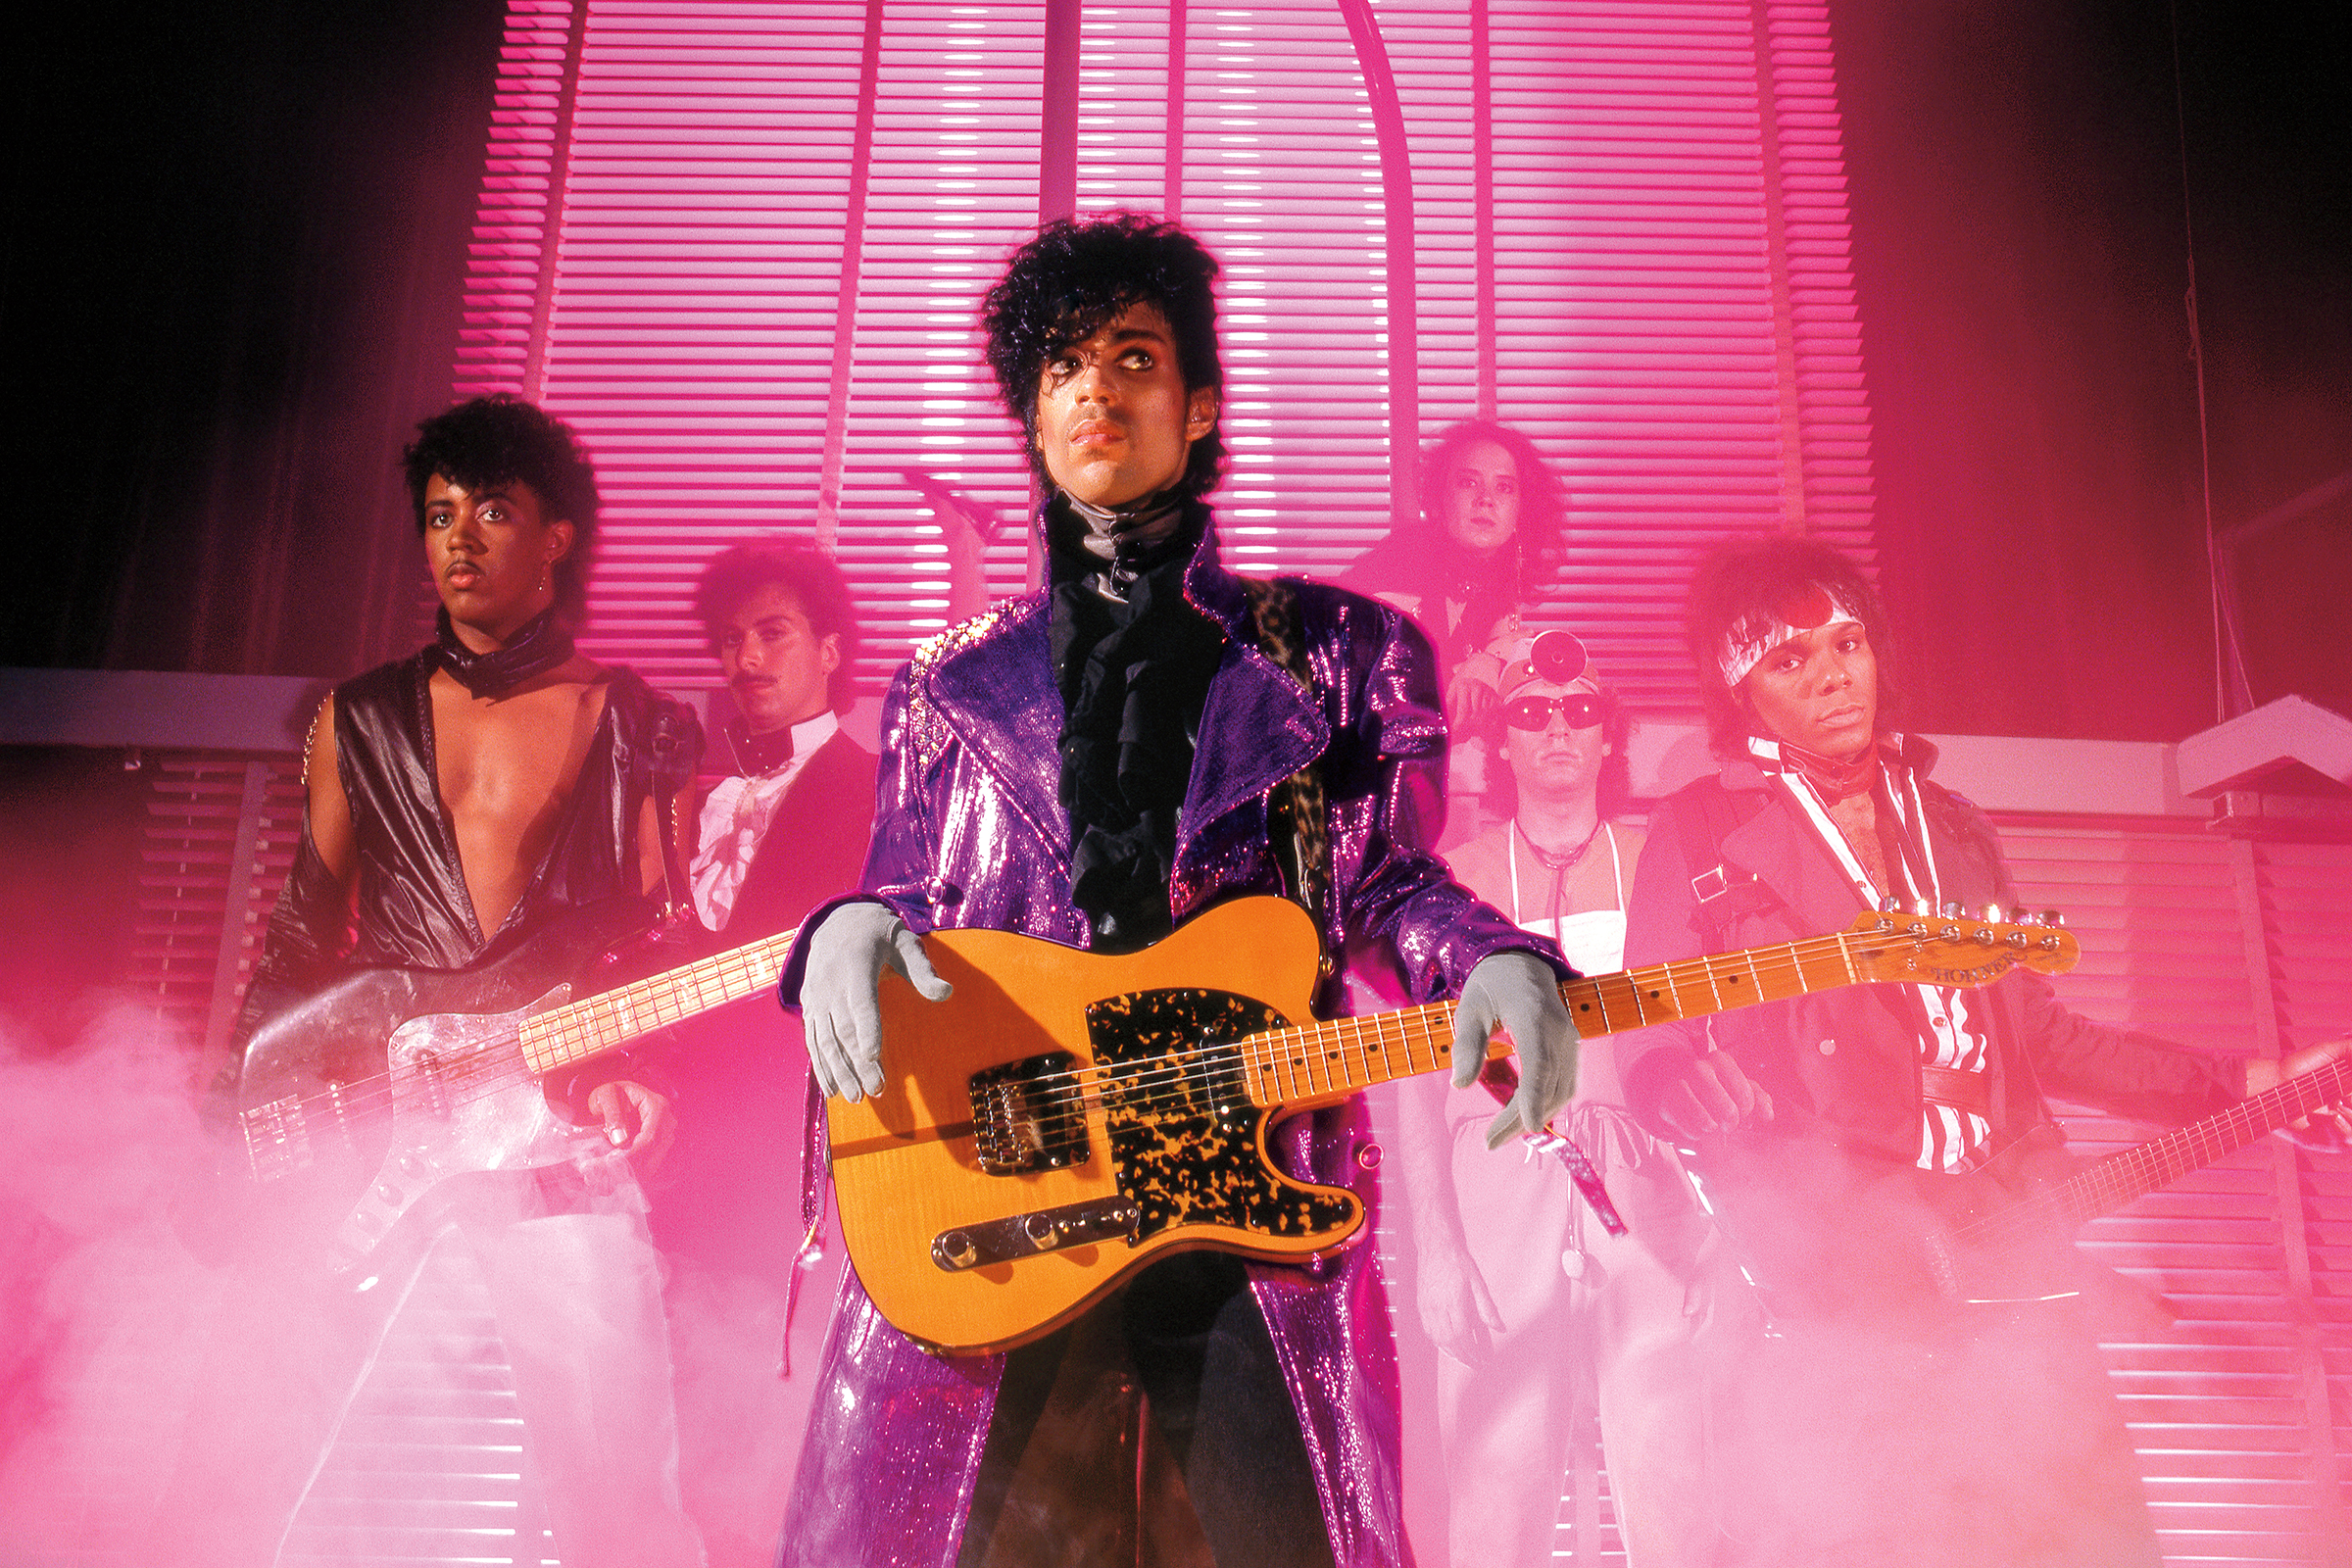 Review Prince S 1999 Super Deluxe Edition Box Set